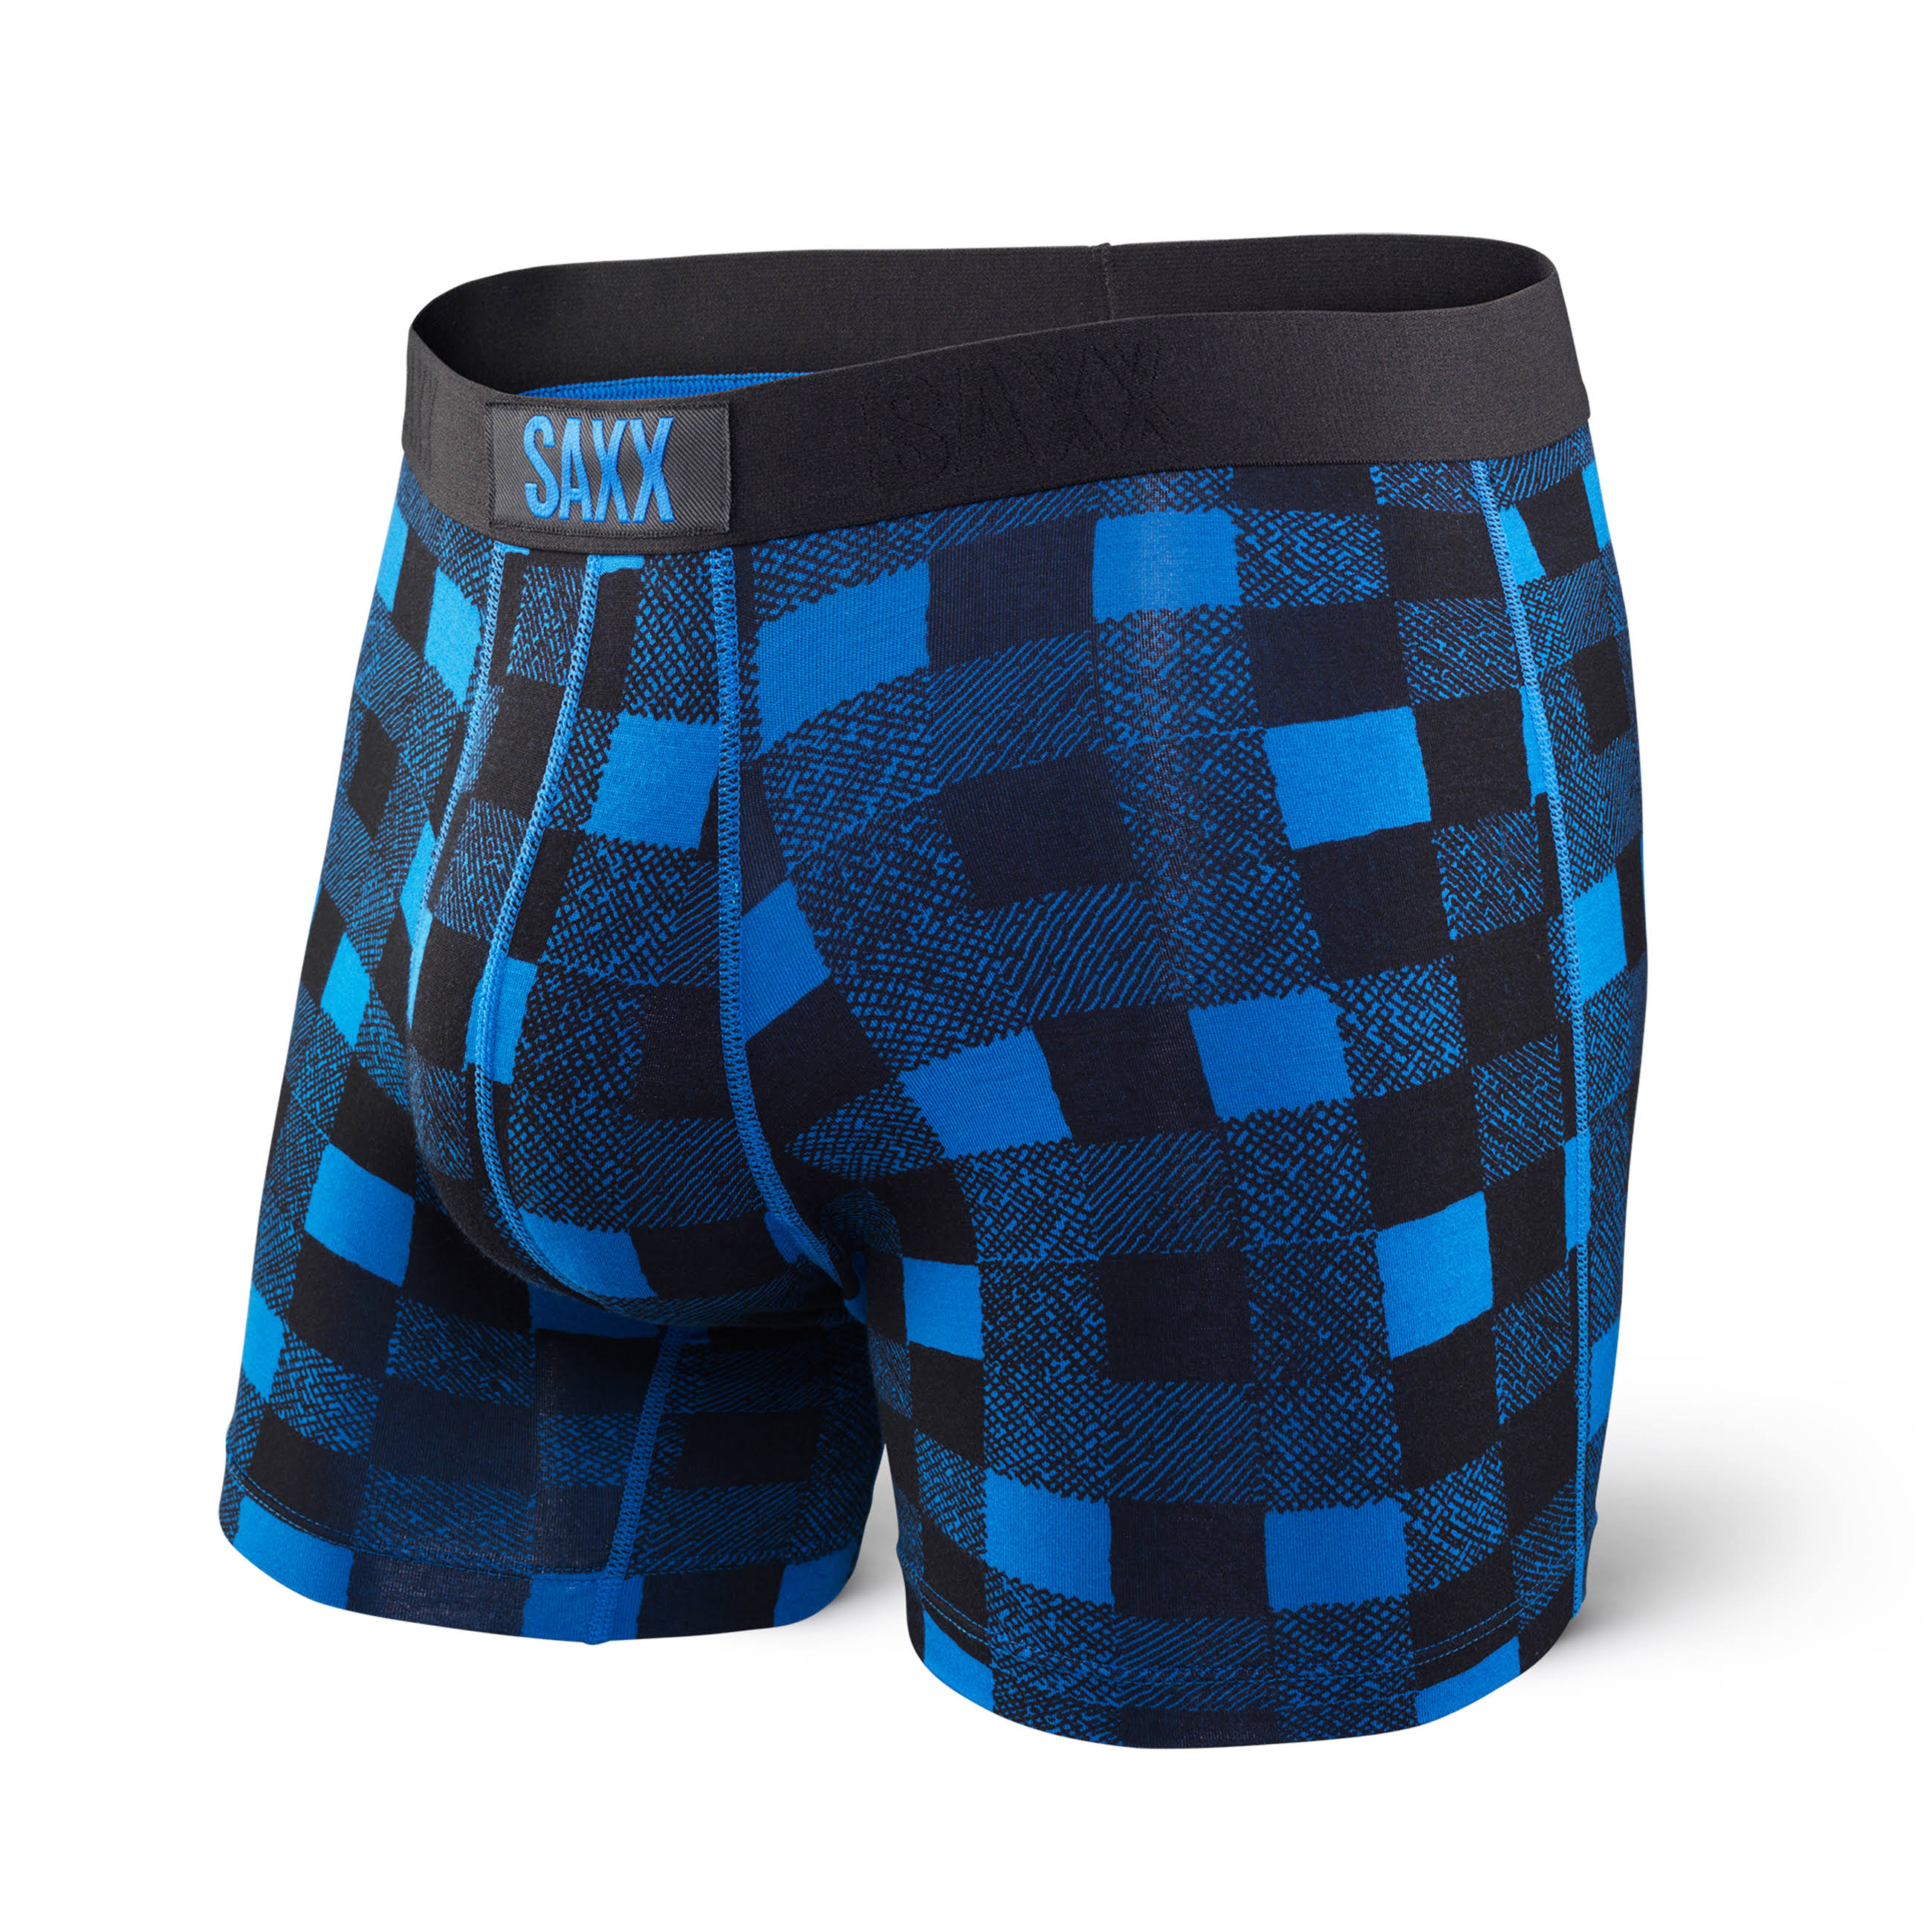 Saxx Vibe Boxer Modern Fit / Royal Lumberjack Plaid / Small